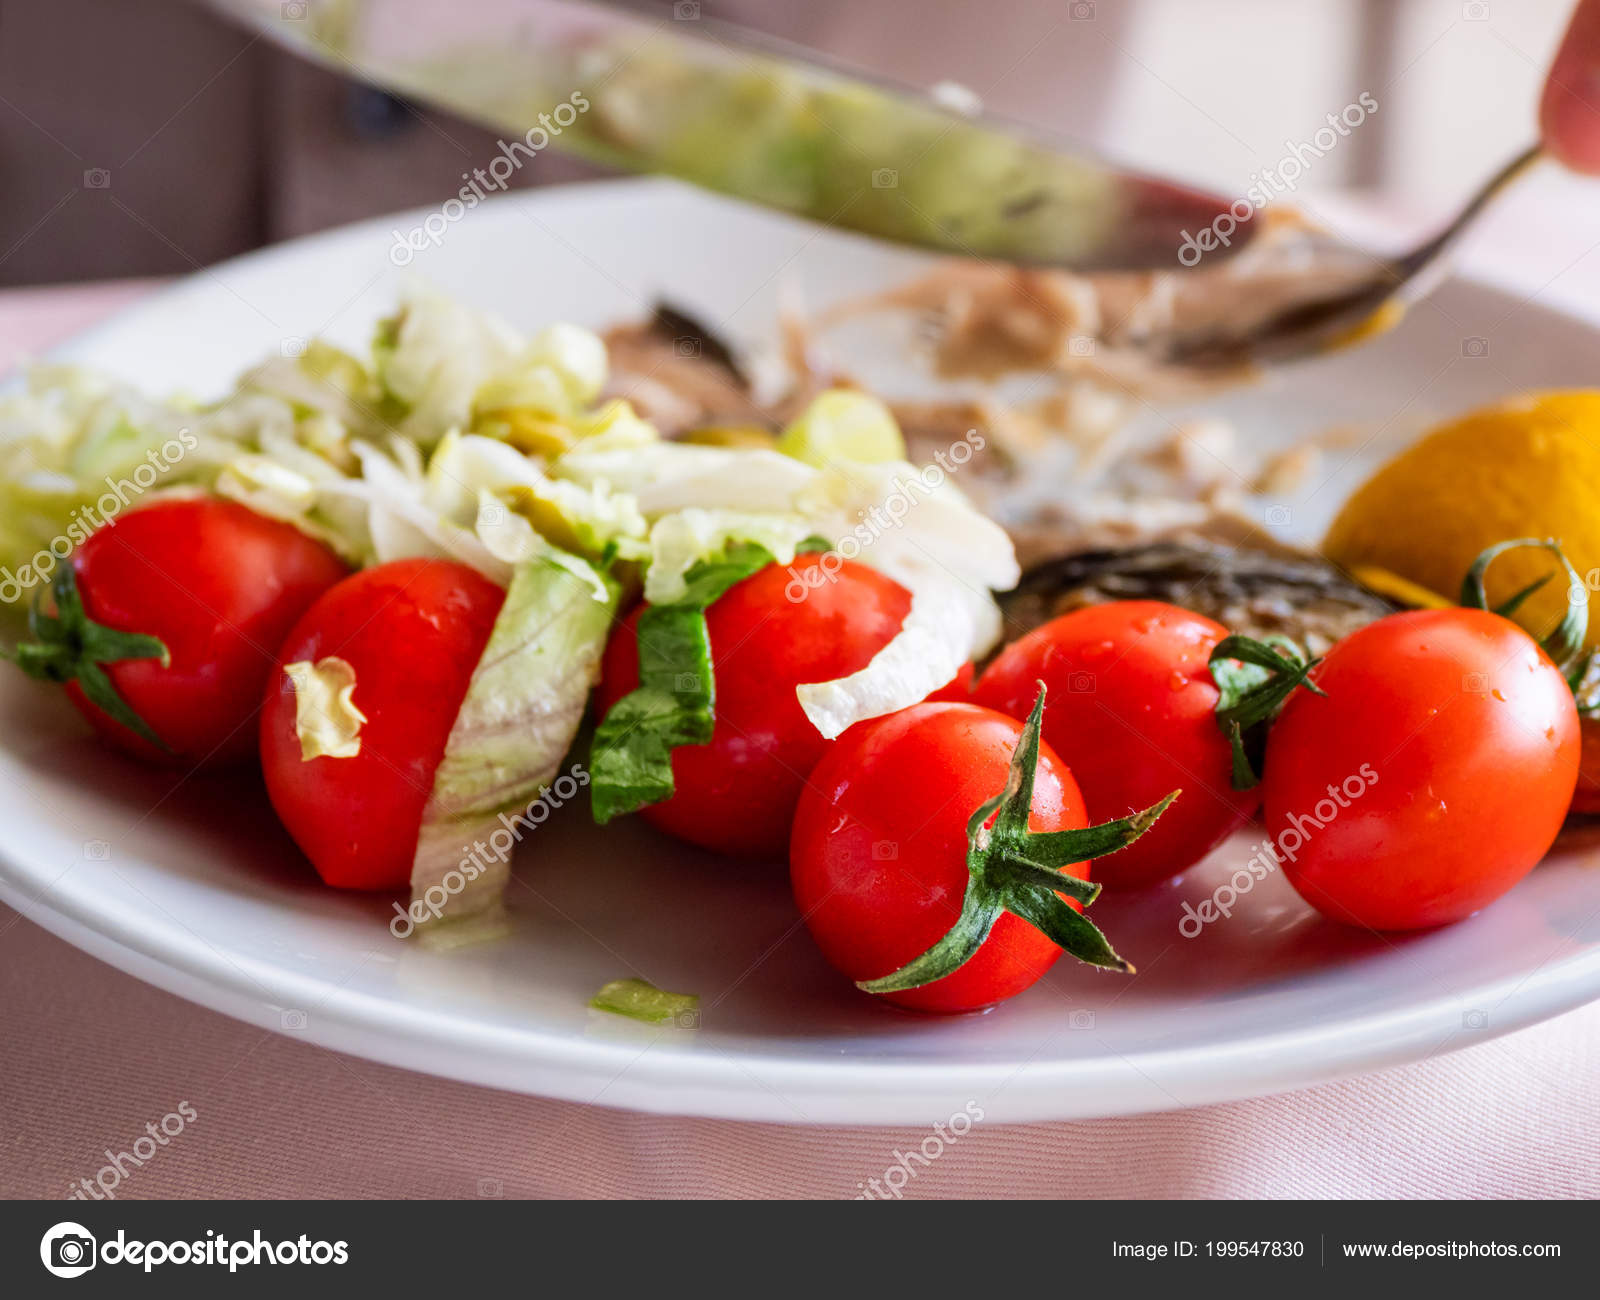 Healthy Dinner Plate Full Stewed Vegetables Grilled Tomatoes Stock Photo